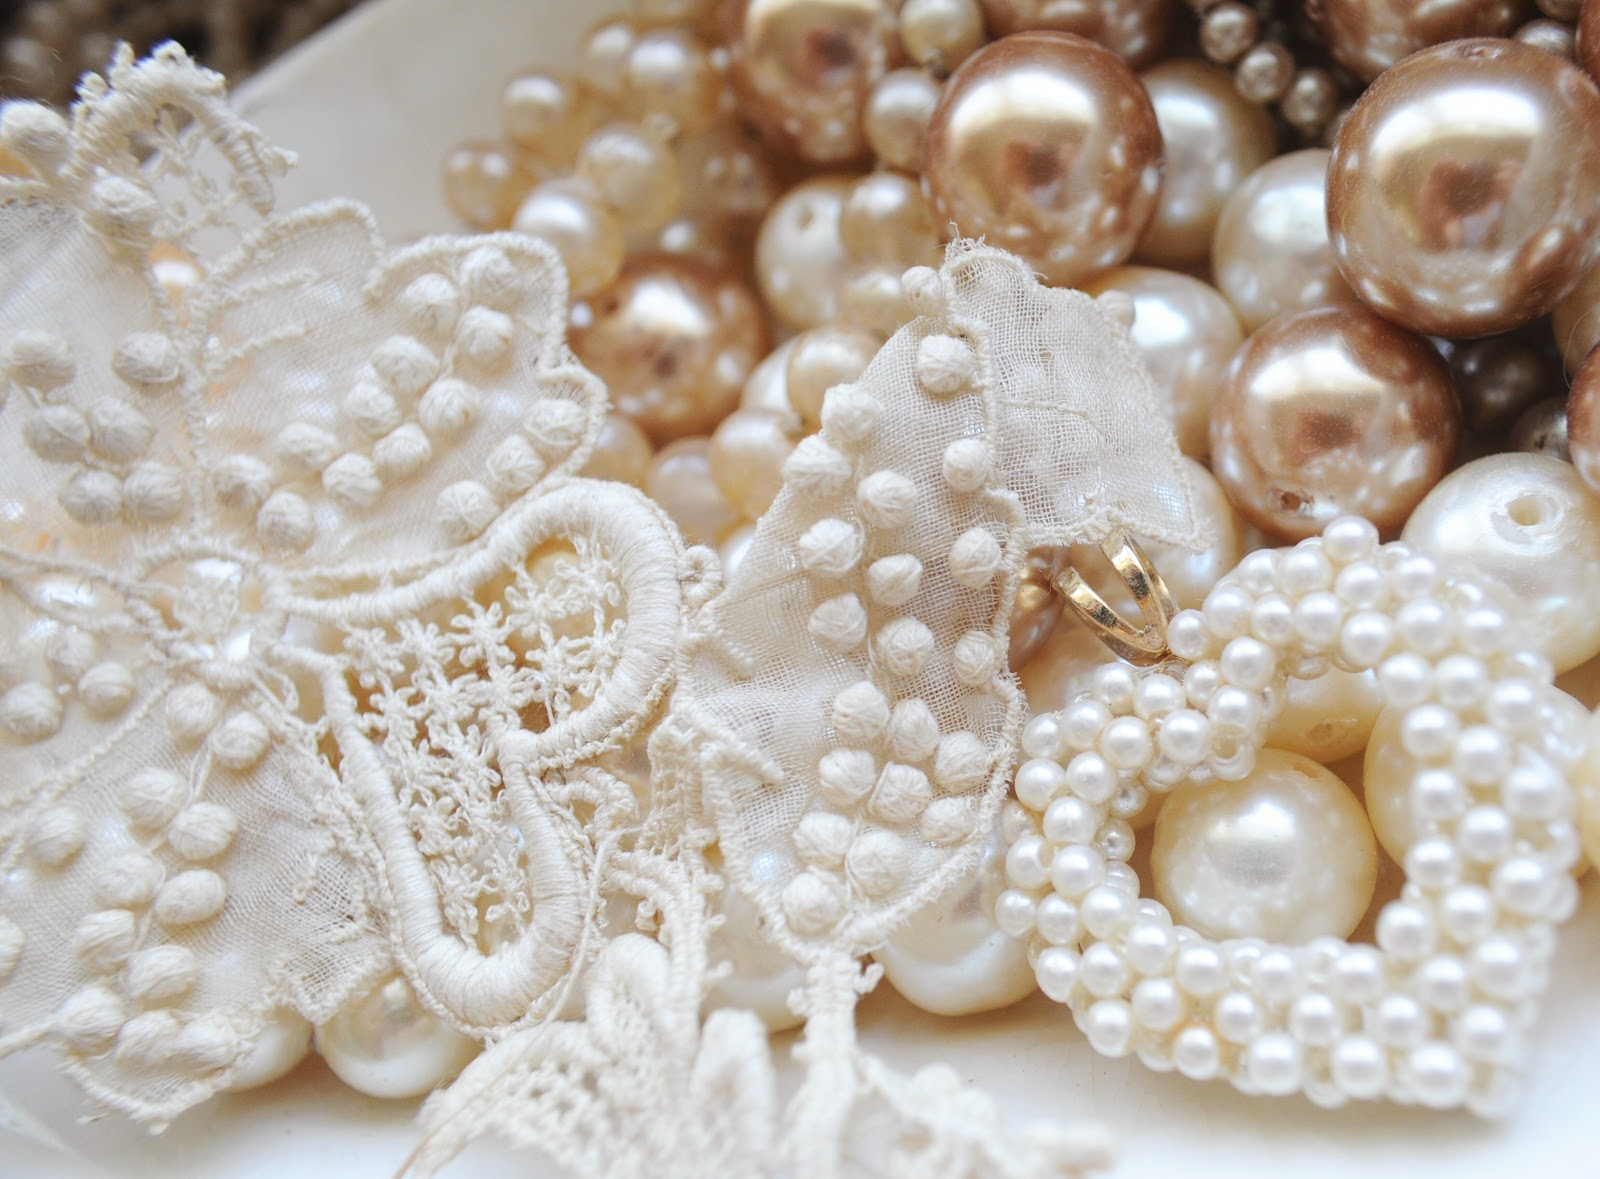 Lace and pearls wallpaper  317165  hdweweb4com